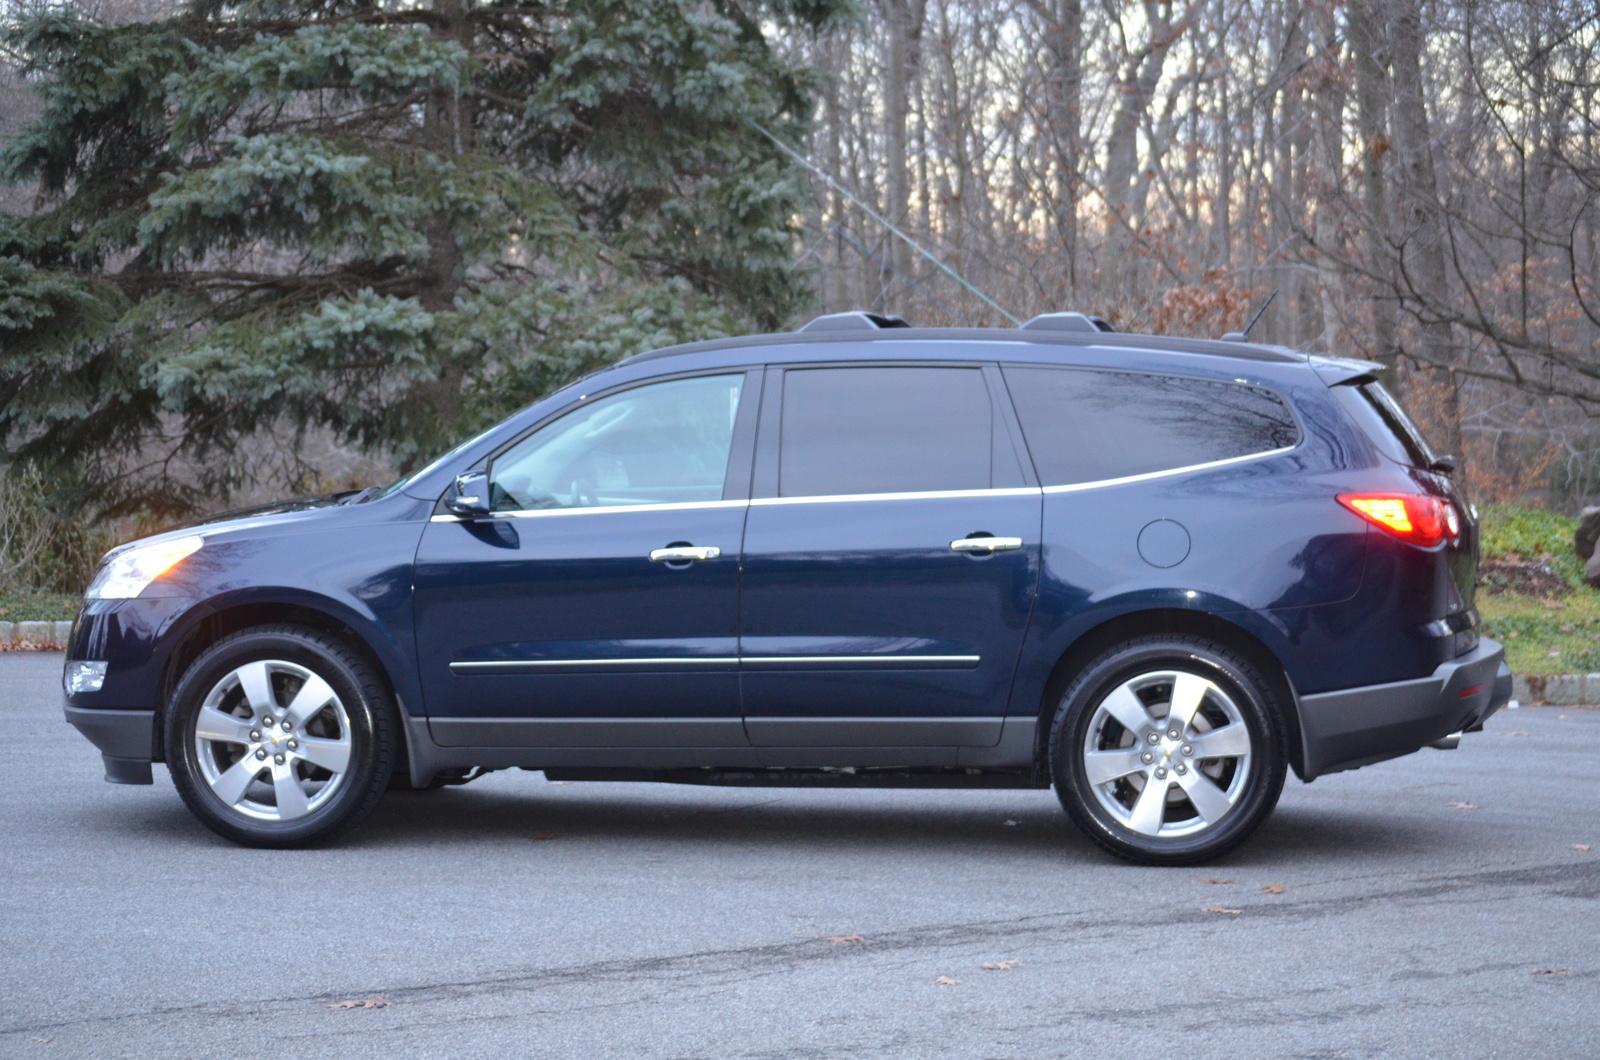 2010 chevrolet traverse pictures cargurus. Black Bedroom Furniture Sets. Home Design Ideas